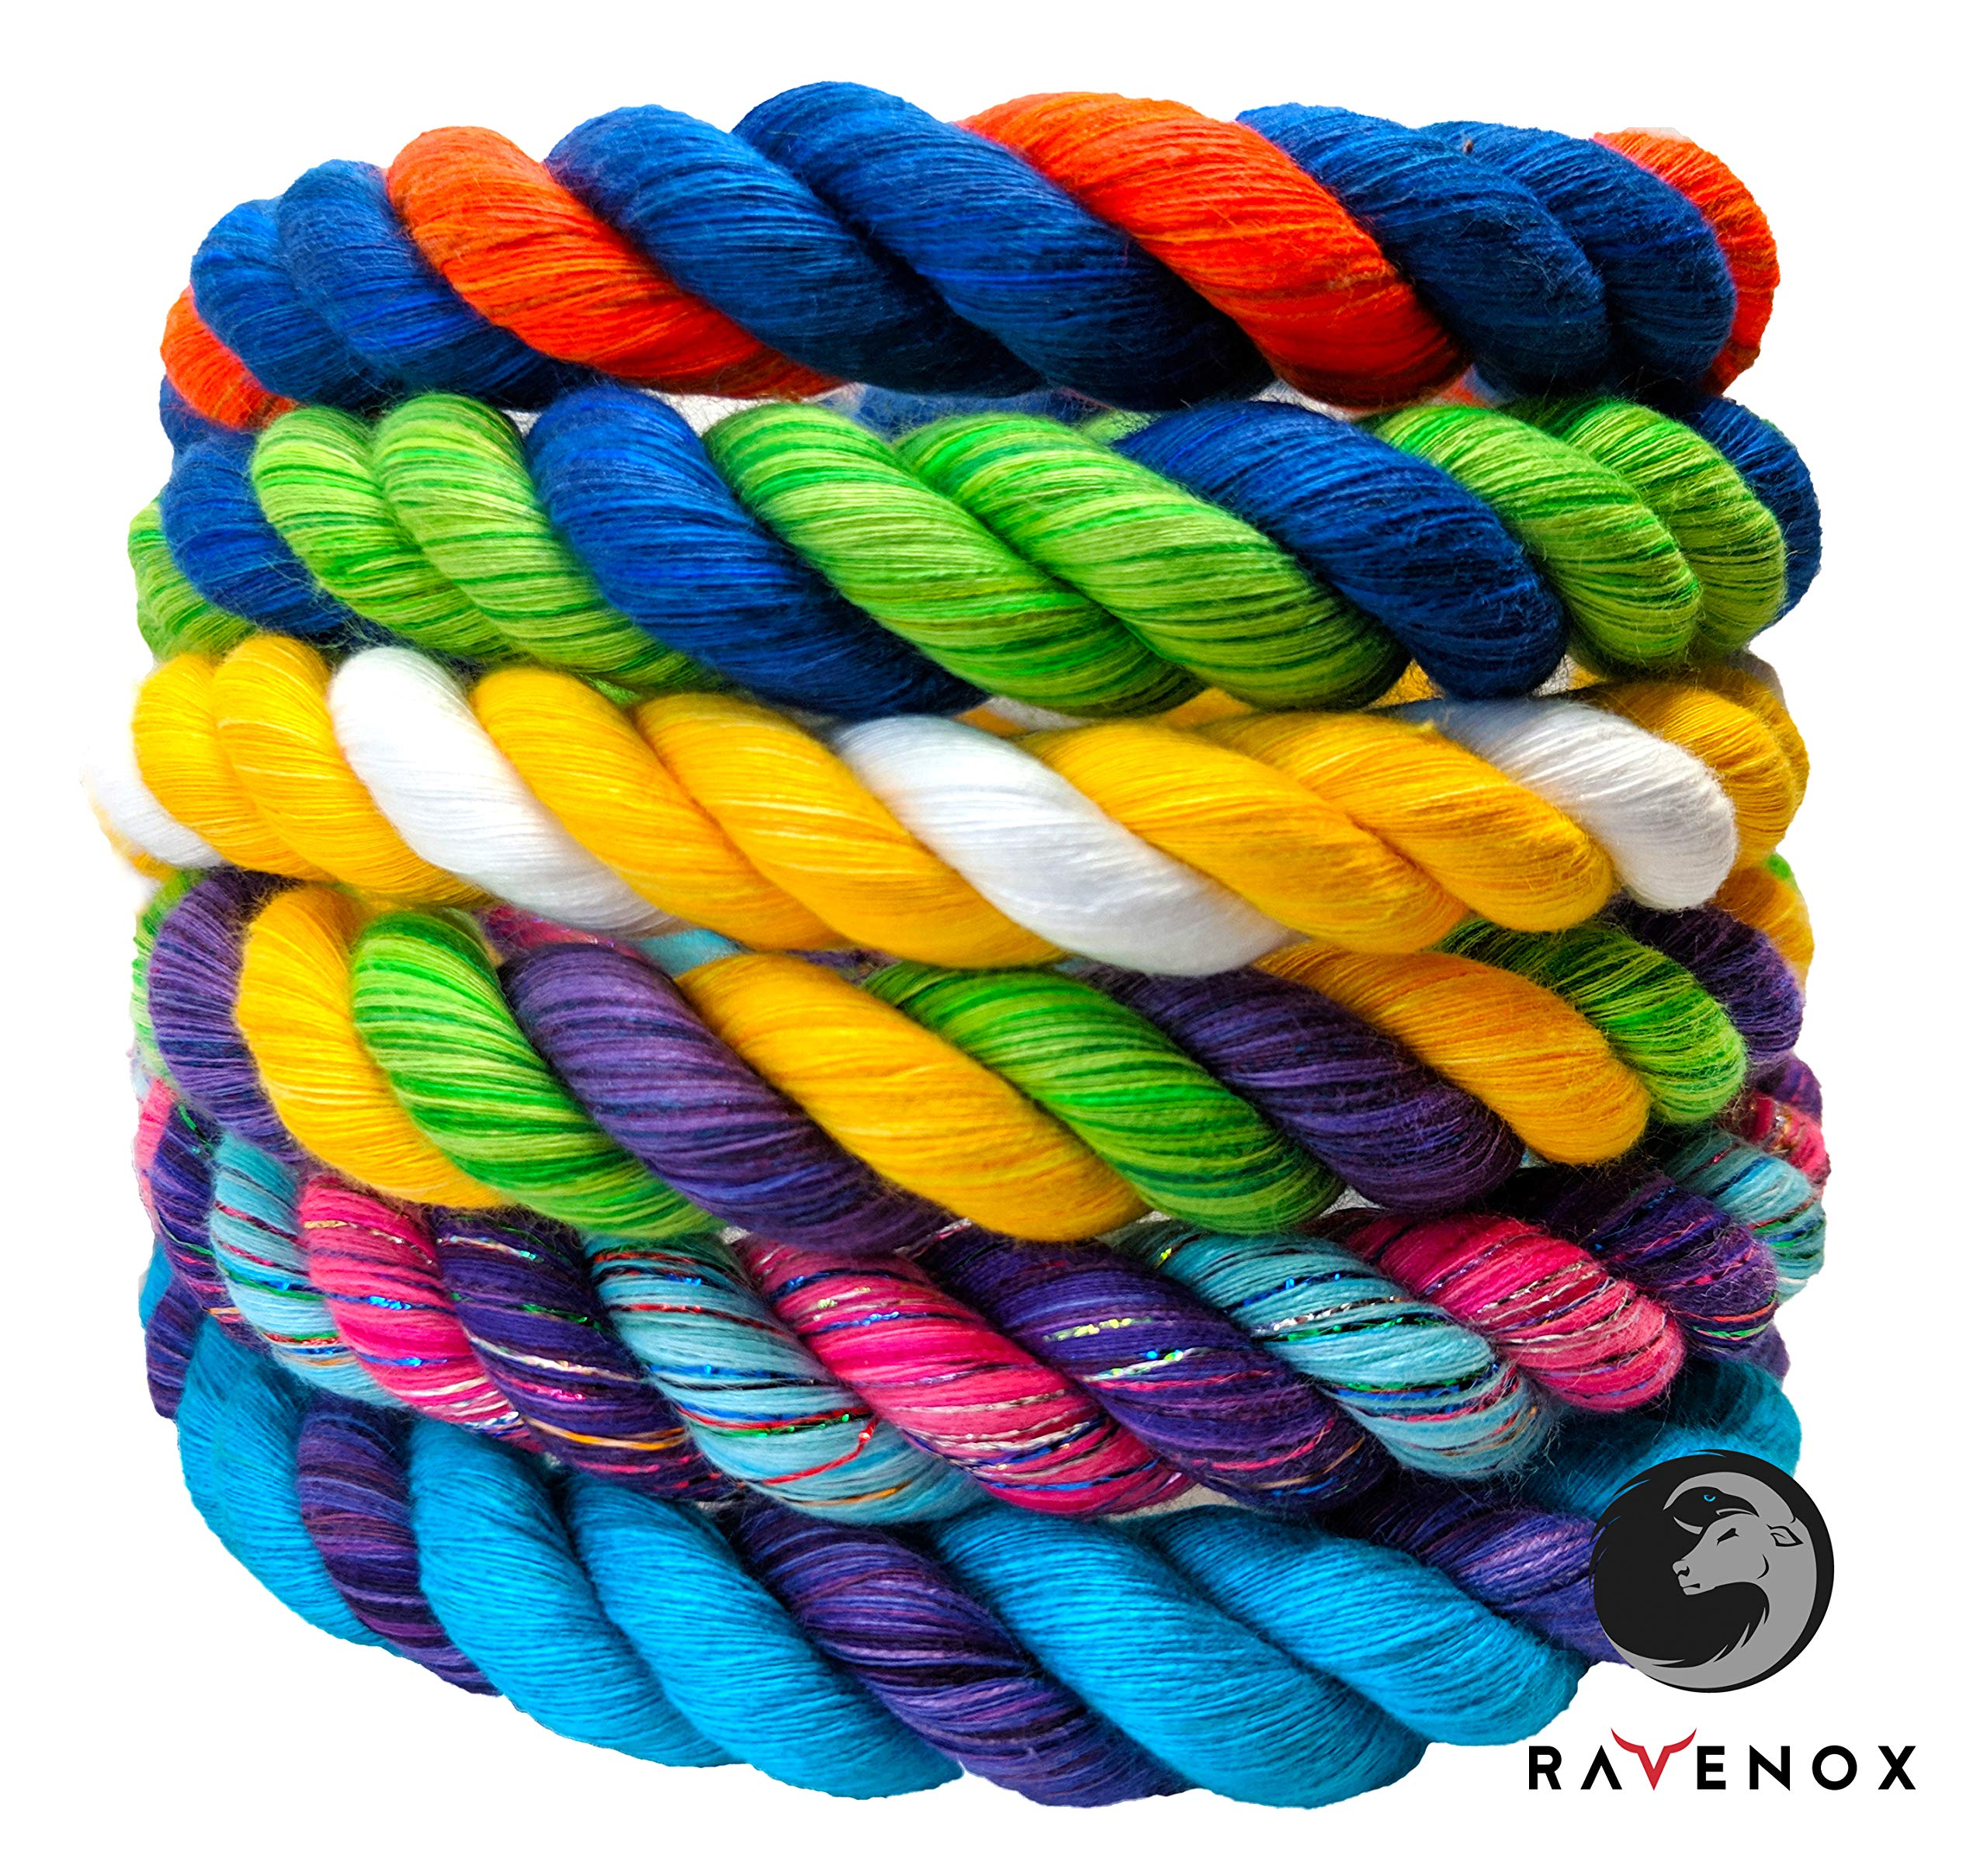 Ravenox Colorful Twisted Cotton Rope | (Black)(3/4 Inch x 25 Feet) | Made in The USA | Custom Color Cordage for Sports, Décor, Pet Toys, Crafts, Macramé & General Use | Rope by The Foot & Diameter